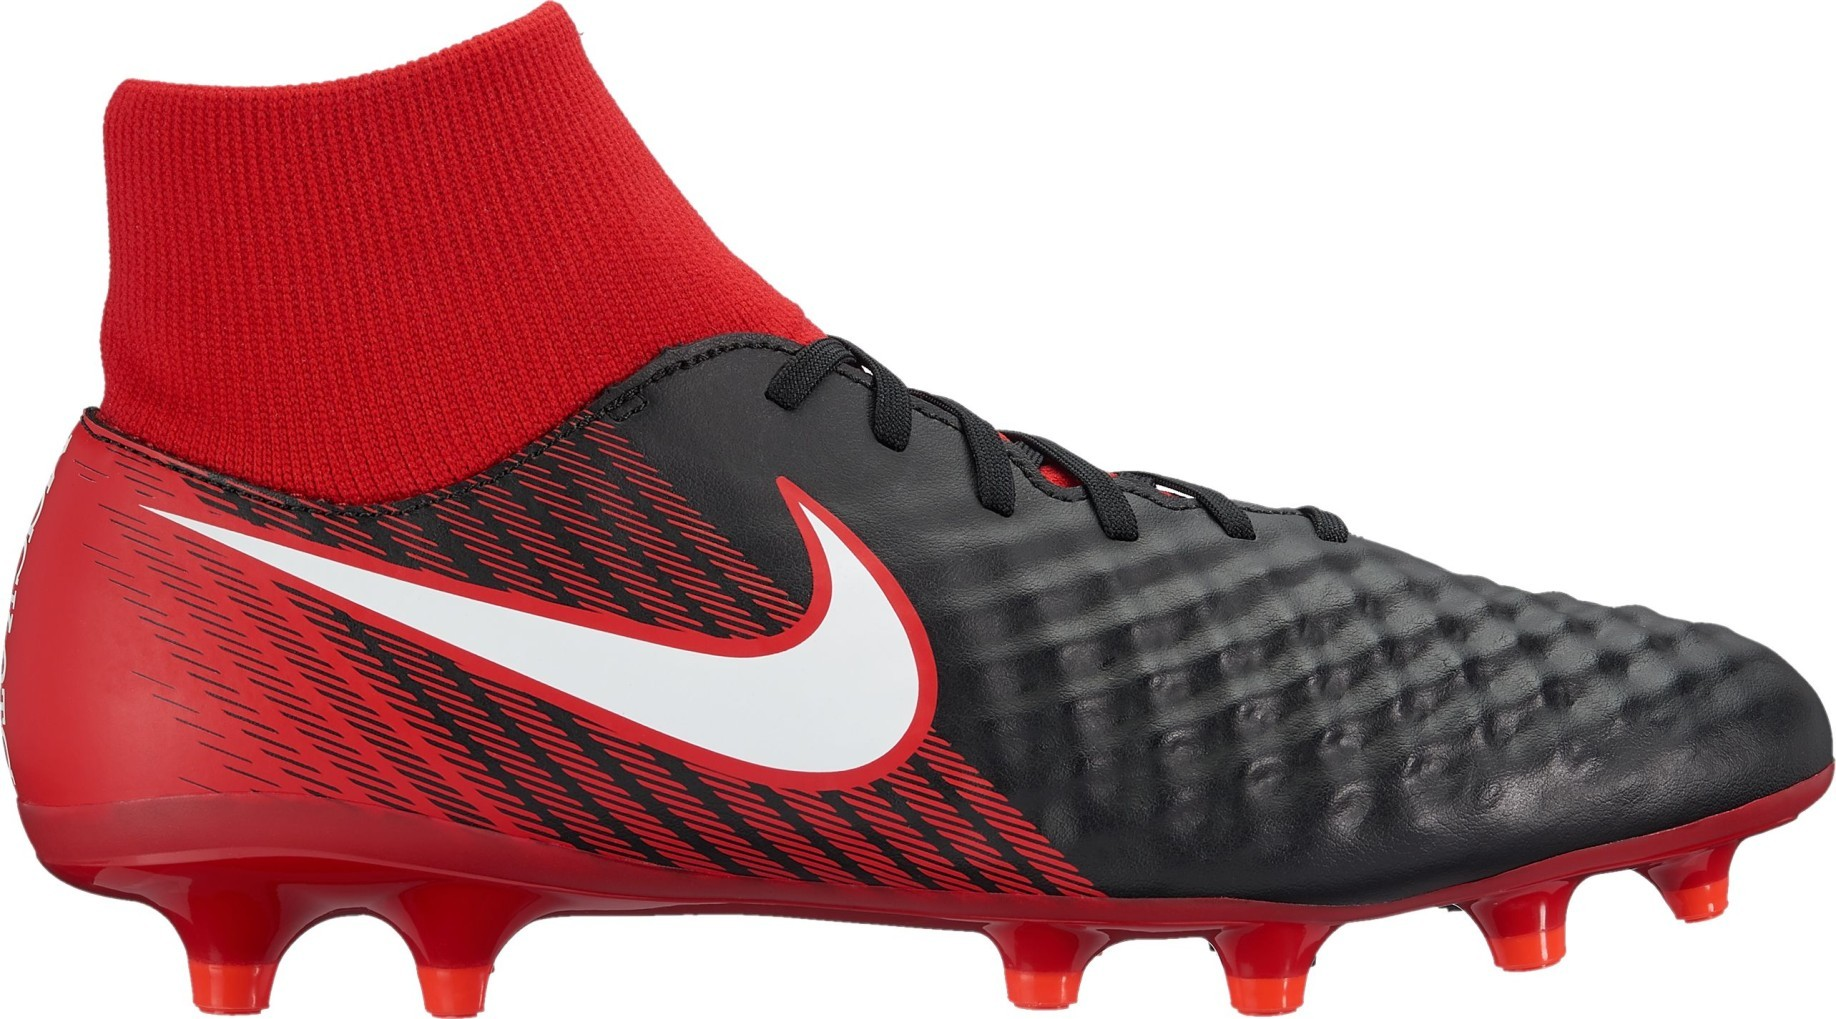 sale retailer 06ec9 74b5b Football boots Nike Magista Onda II DF FG Fire Pack colore Black Red - Nike  - SportIT.com